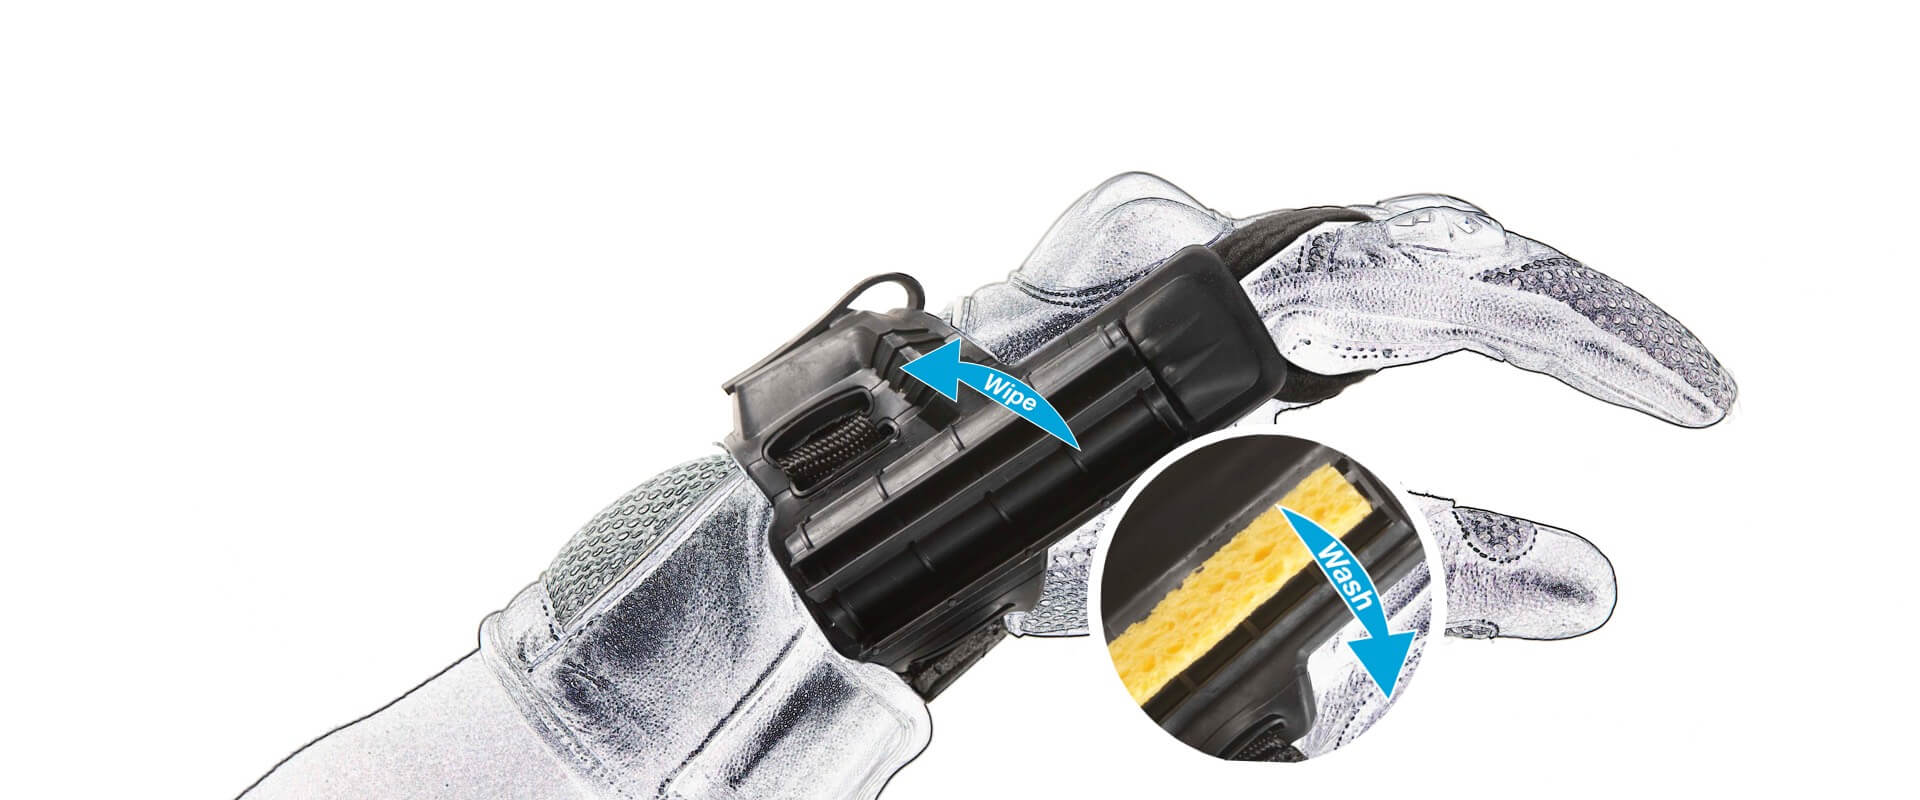 Visorcat - glove-mounted visor-cleaning device allows bikers to wash wipe as you ride in one easy move